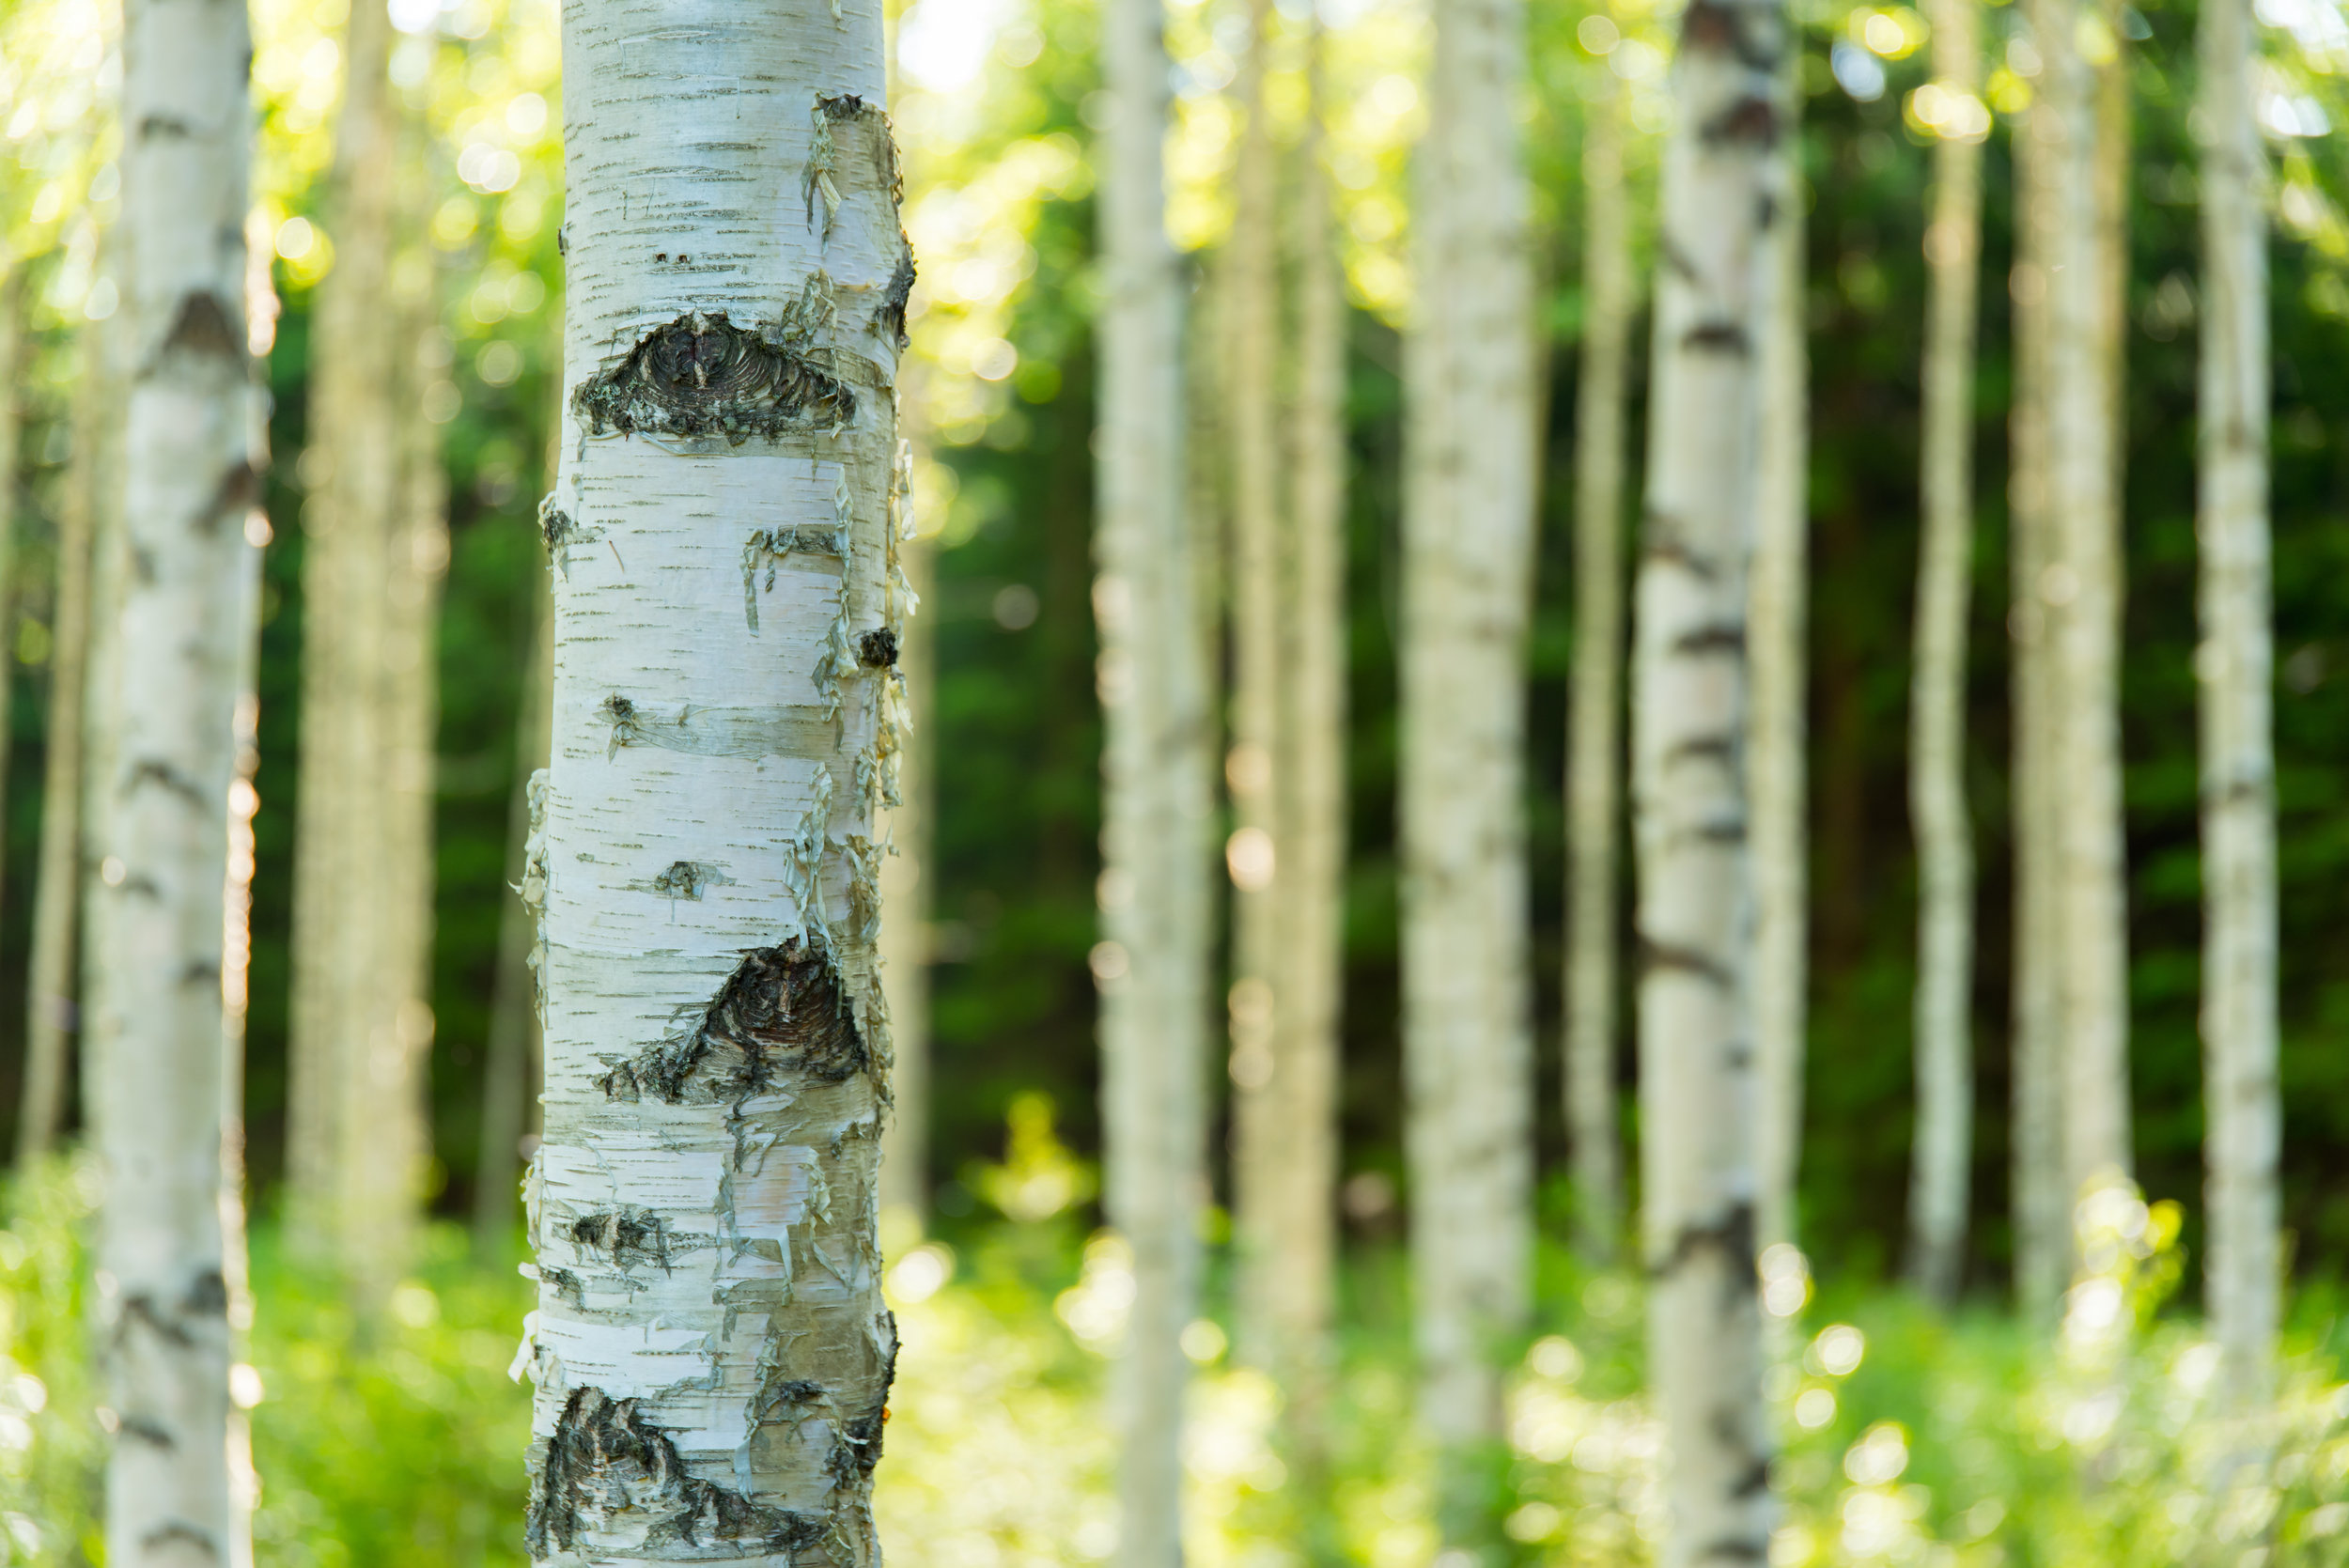 Nordic Forest. Photo: Villesep. Image provided by Shutterstock.